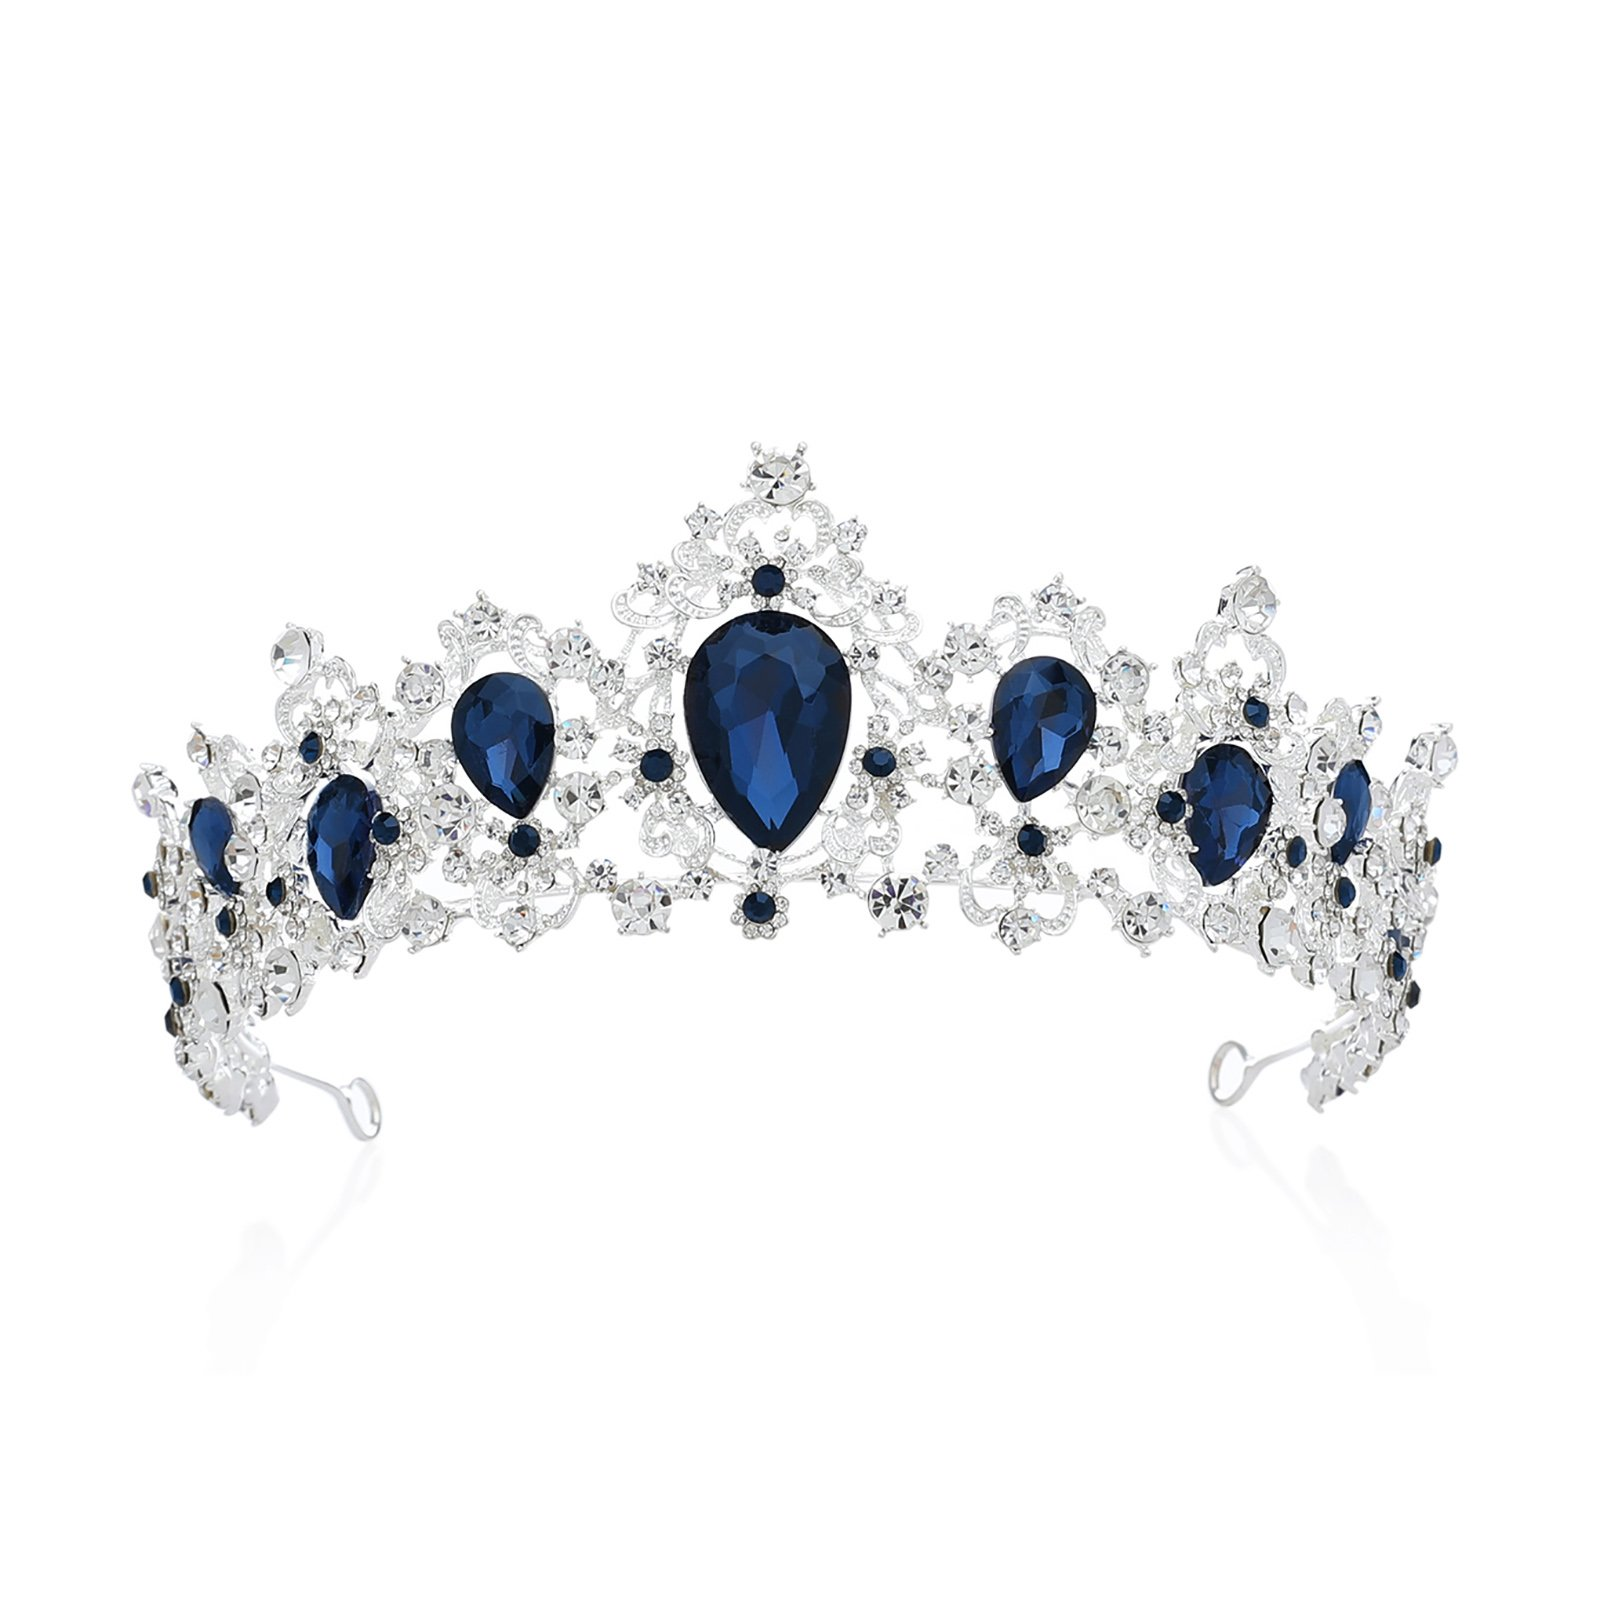 SWEETV Royal CZ Crystal Tiara Wedding Crown Princess Headpieces Bridal Hair Accessories, Sapphire+Silver by SWEETV